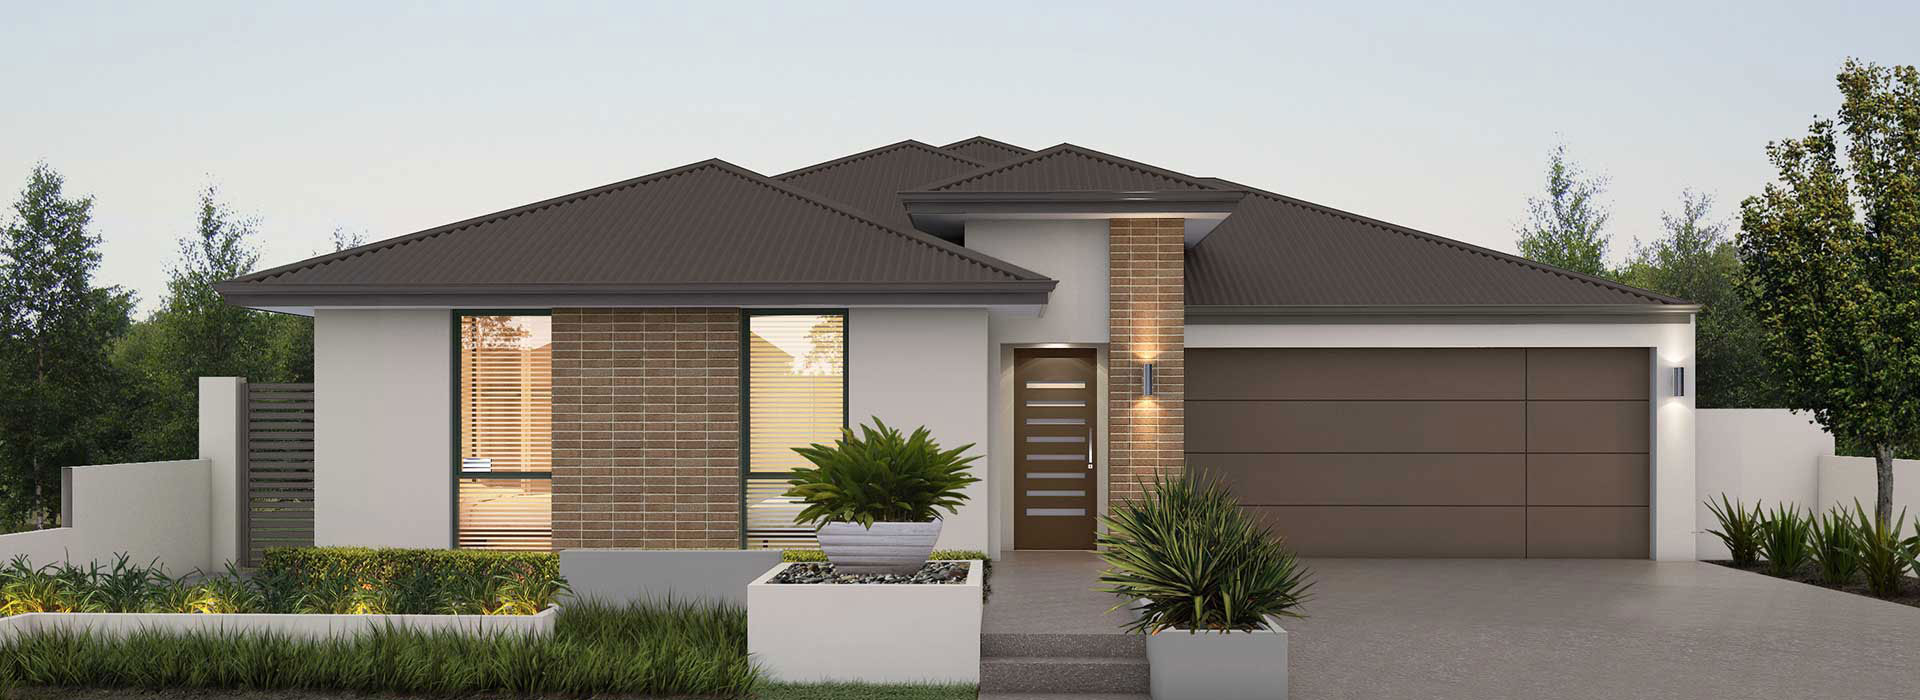 House Exterior of House and Land Package in Perth located in Piara Waters, WA